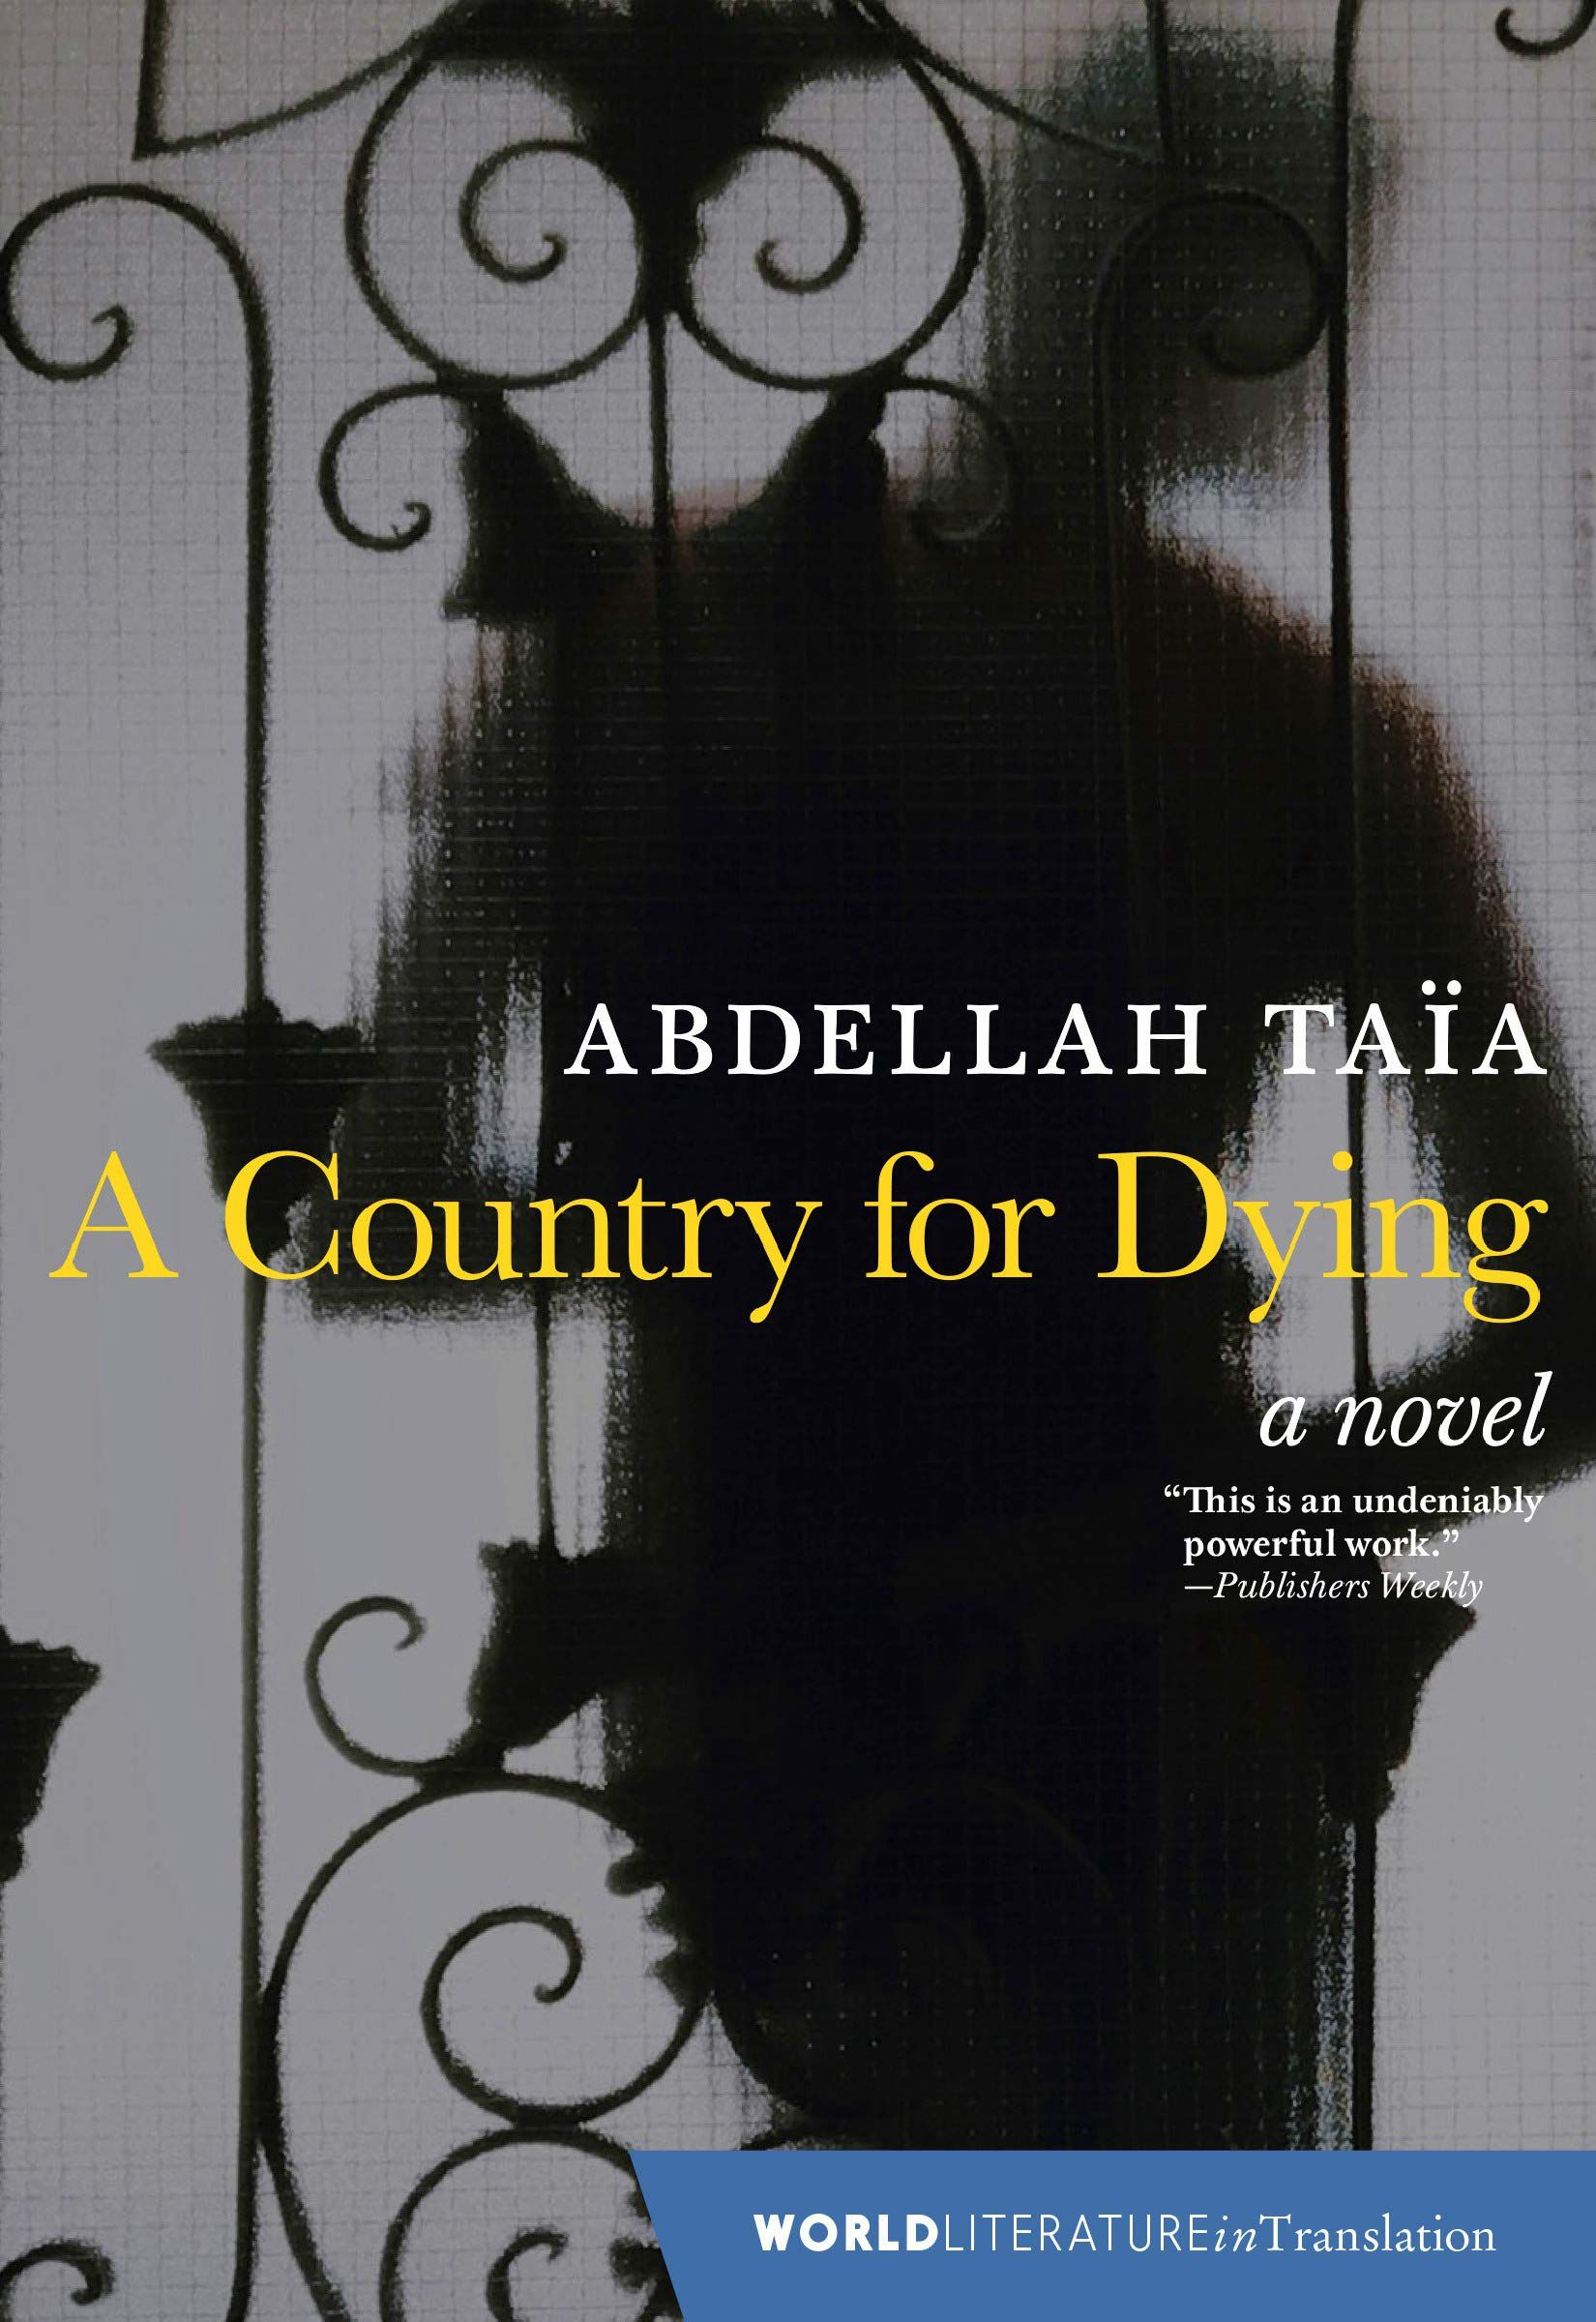 A Country for Dying by Abdellah Taia